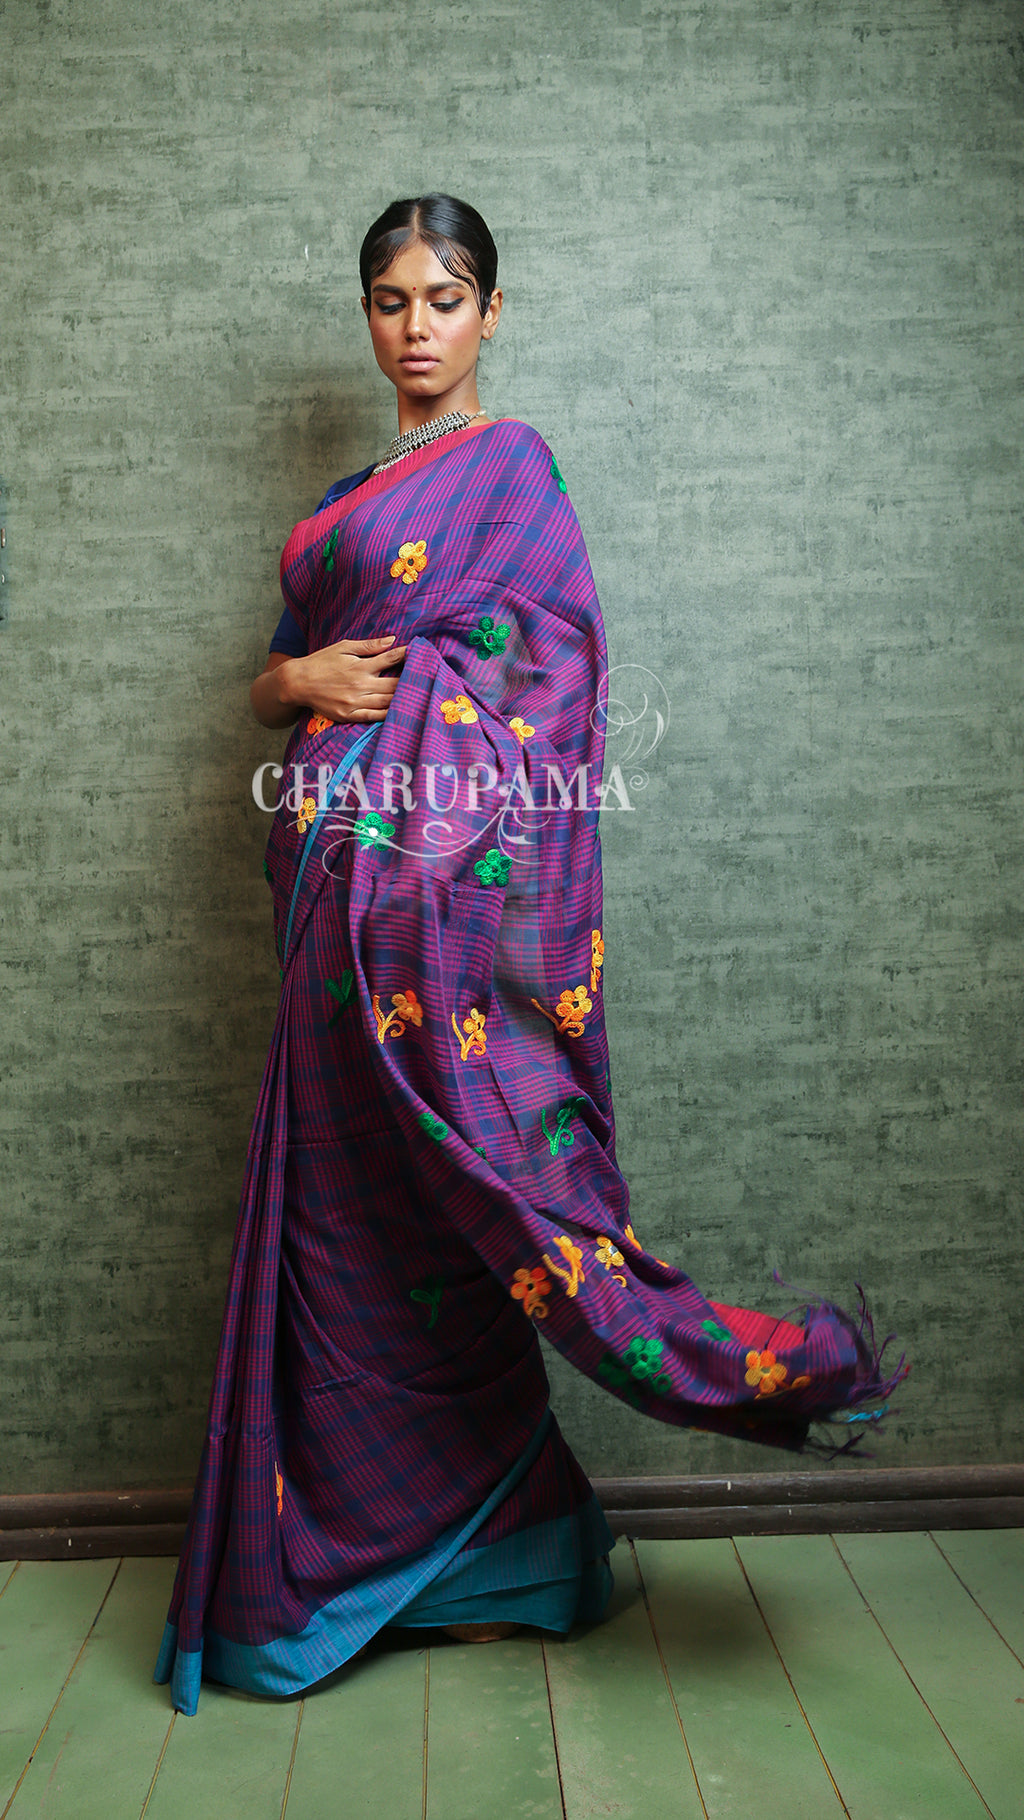 This Handloom Cotton Checkered  Saree In Beautiful Blue And Purple Combination Is Simply Gorgeous. - Charupama